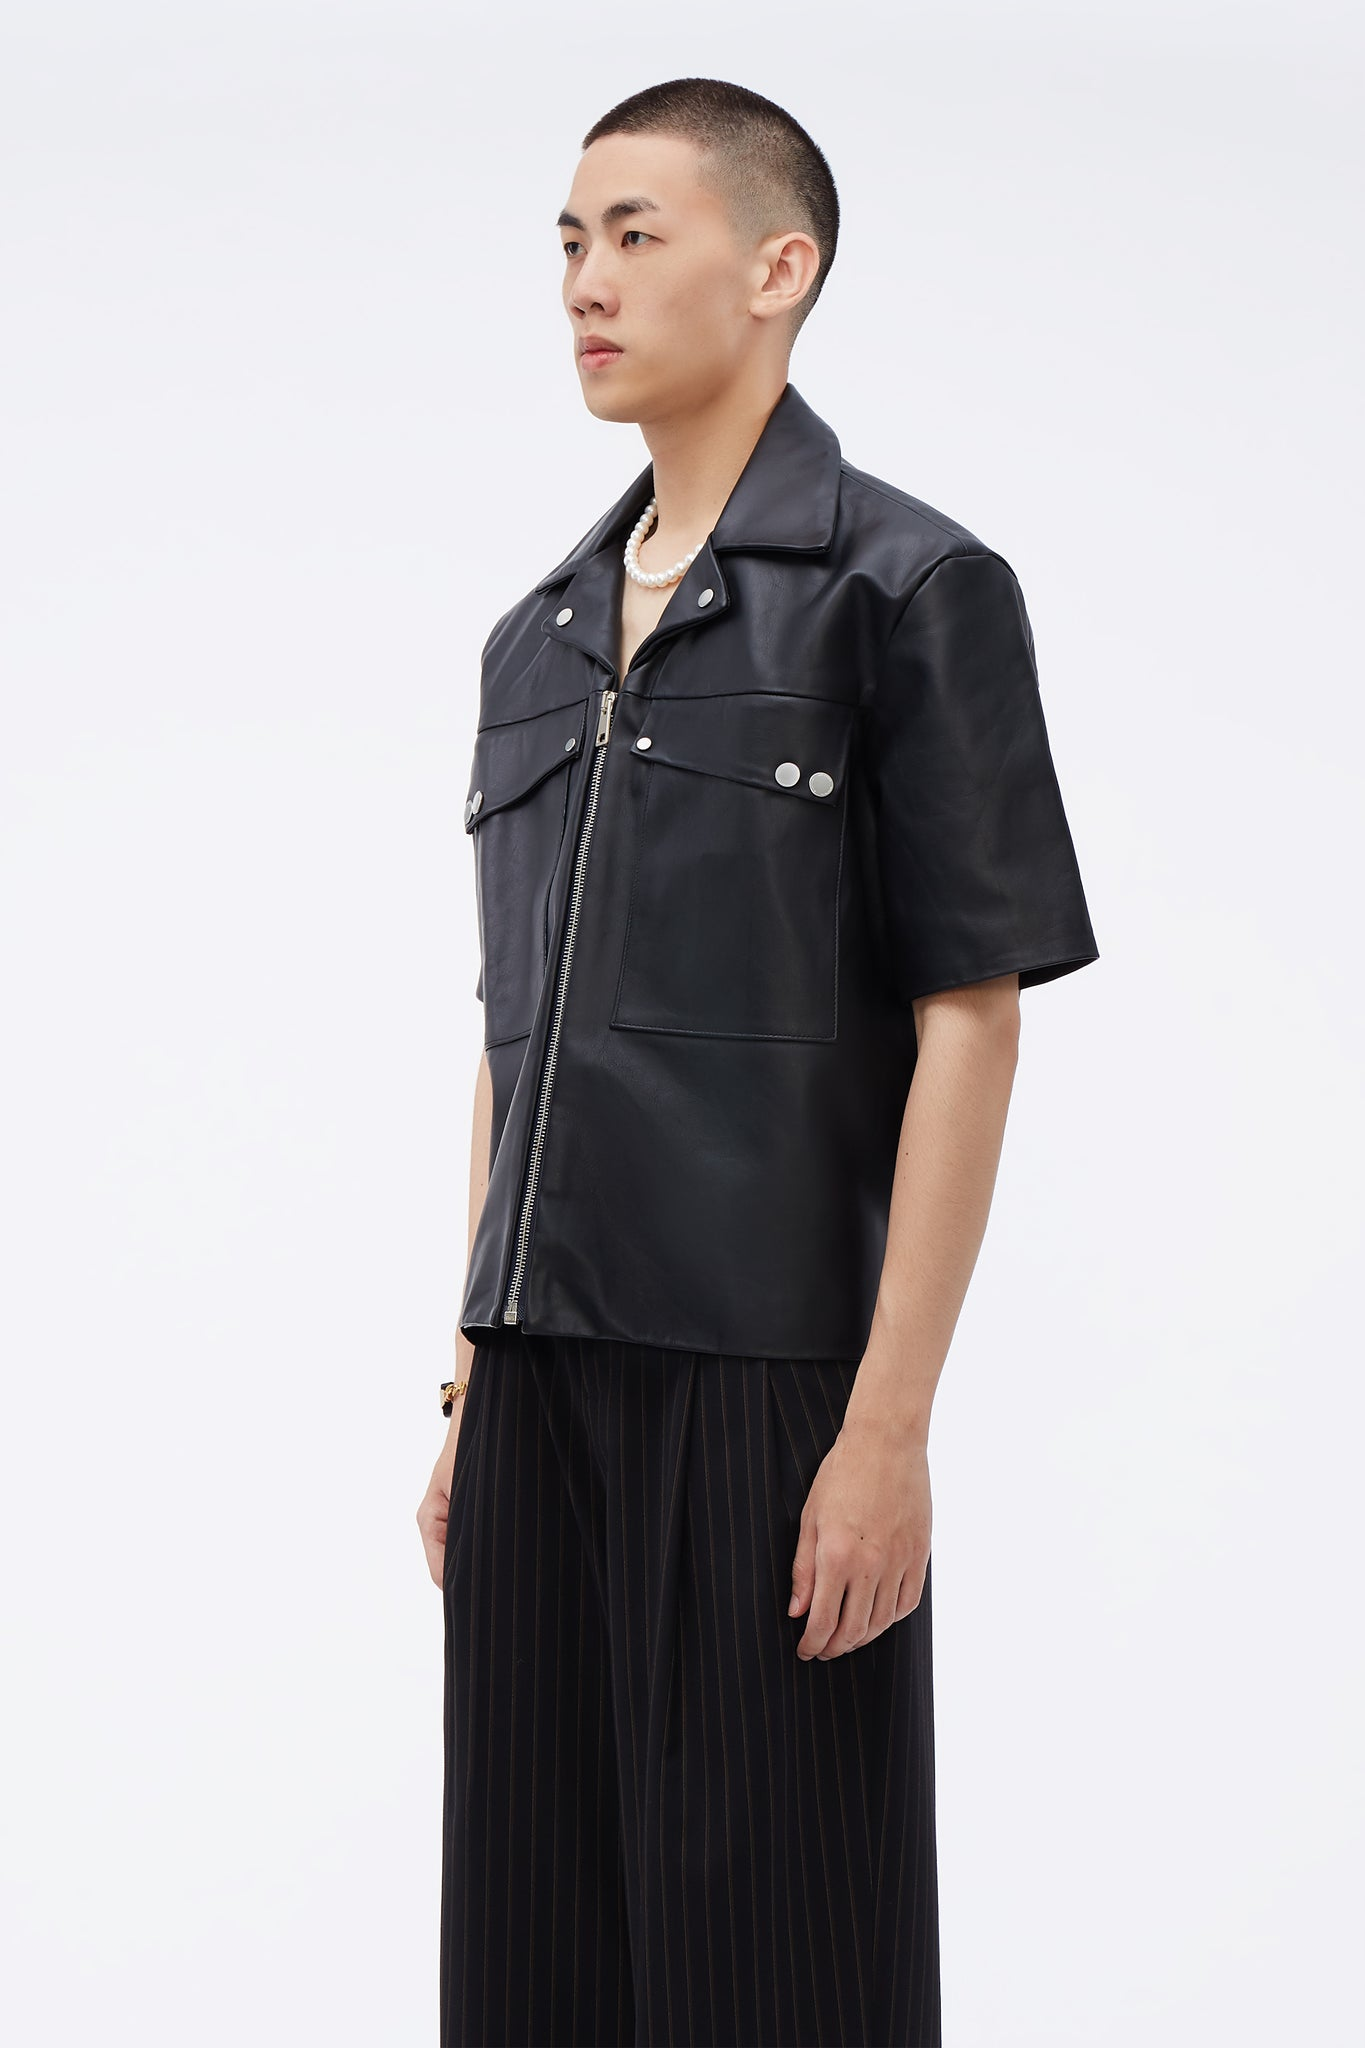 Sahara Slanted Pocket Oversized SS Jacket Black leather